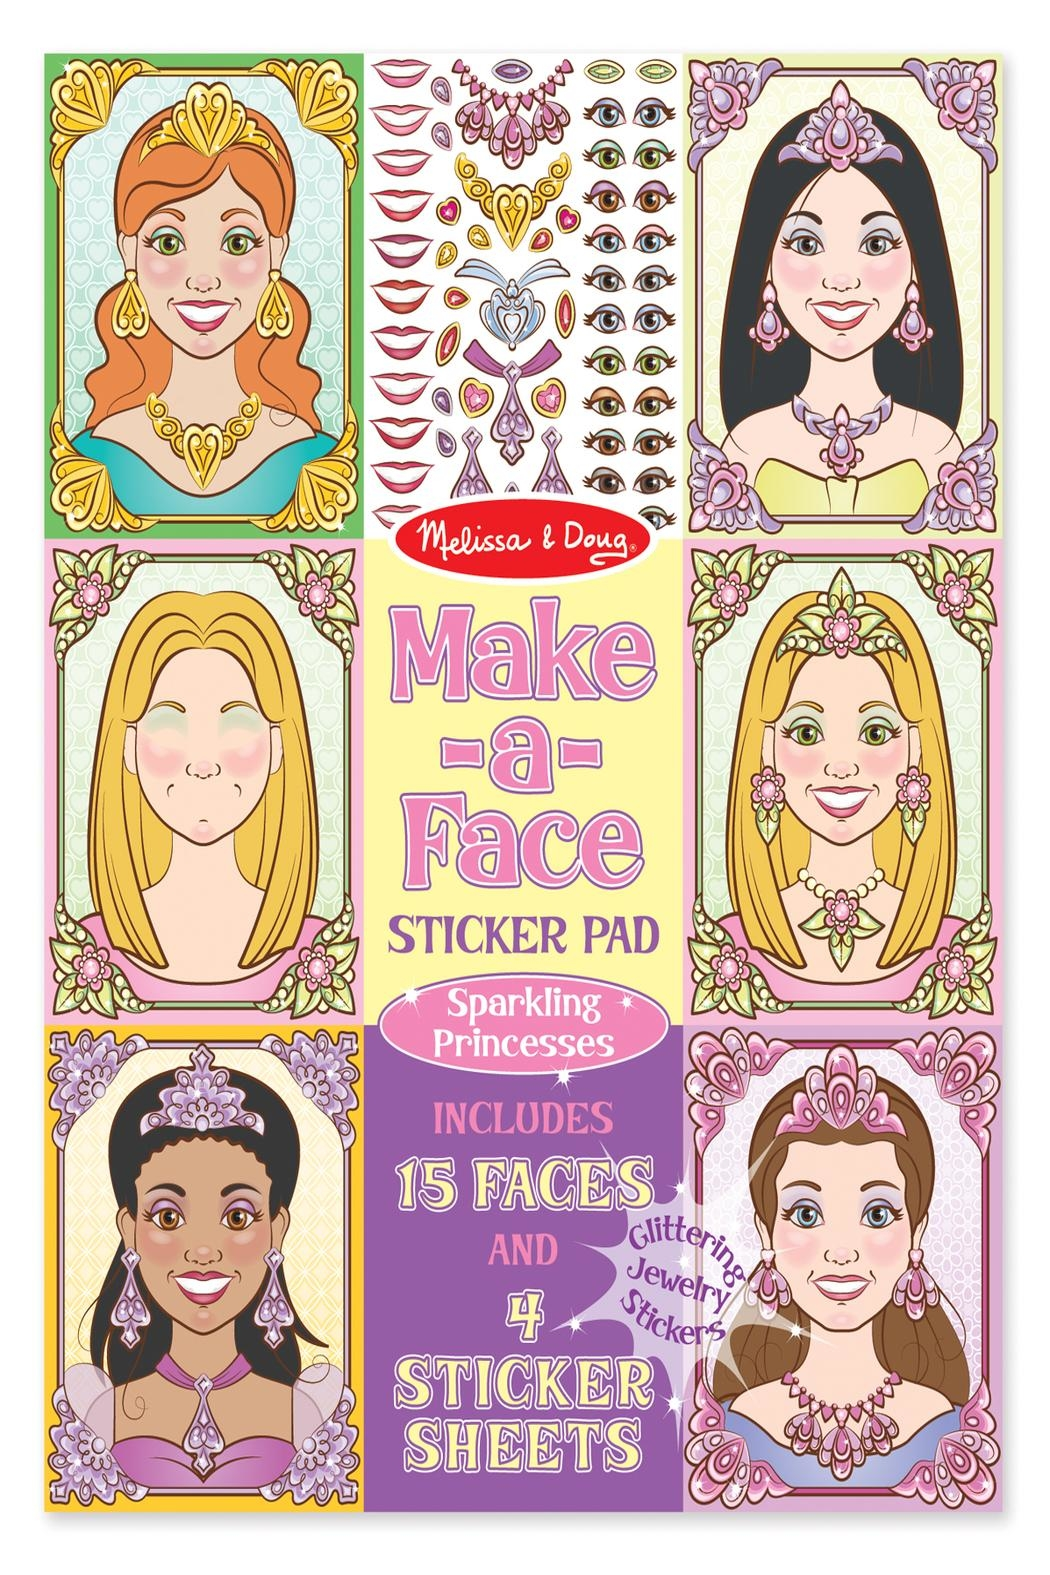 Melissa & Doug Sticker Pad - Main Image